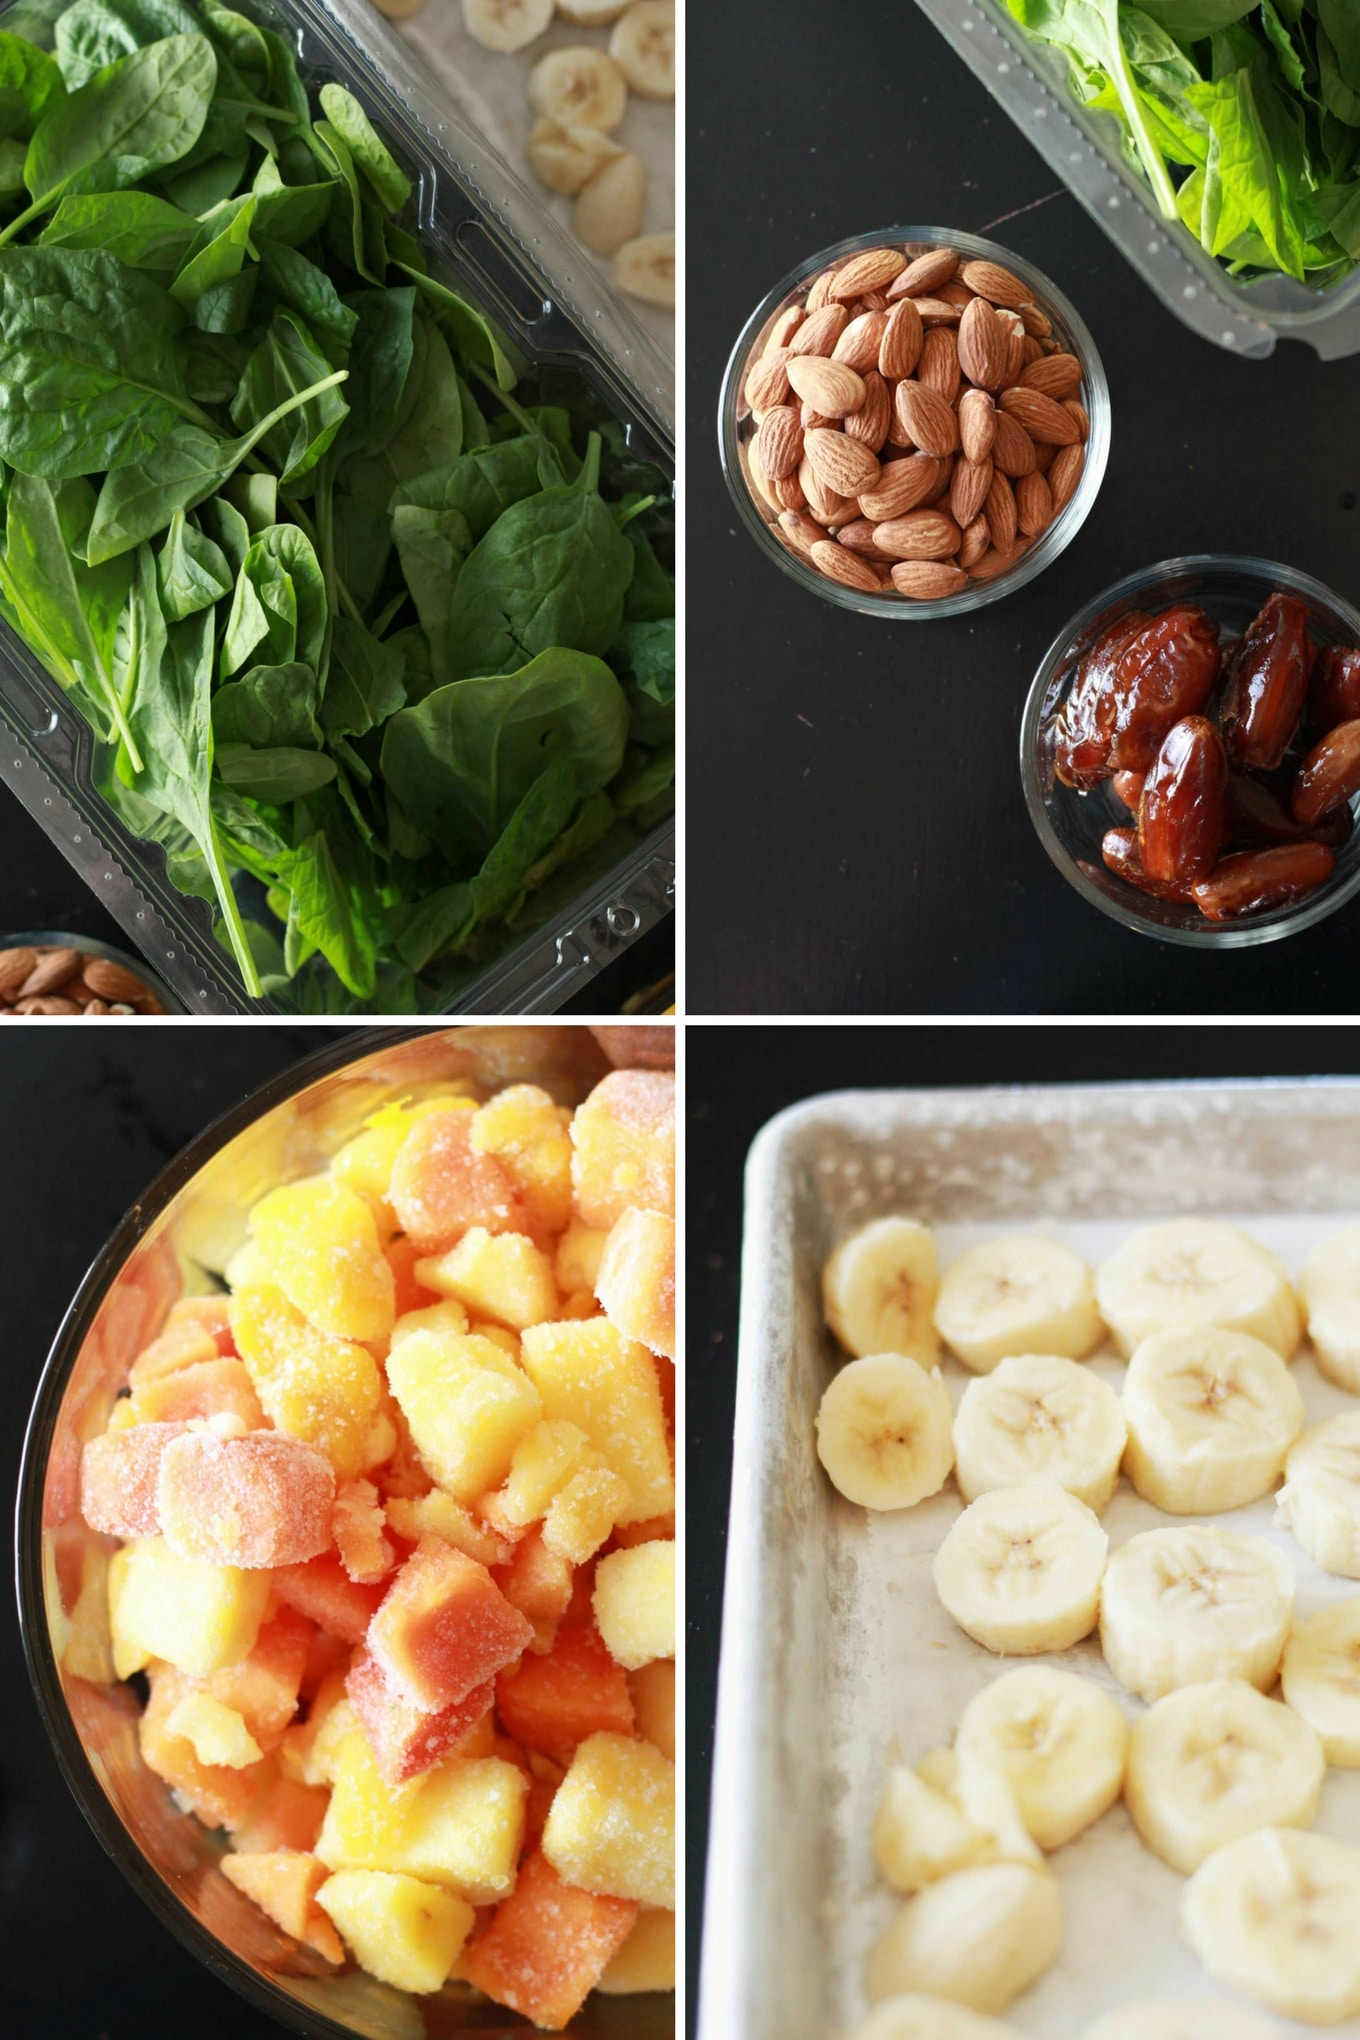 Perfect Green Smoothie | Smoothie ingredients displayed in collage = baby spinach, raw almonds, dates, frozen tropical fruit mix, frozen bananas | Vegan green smoothie recipe | https://eatwithinyourmeans.com/